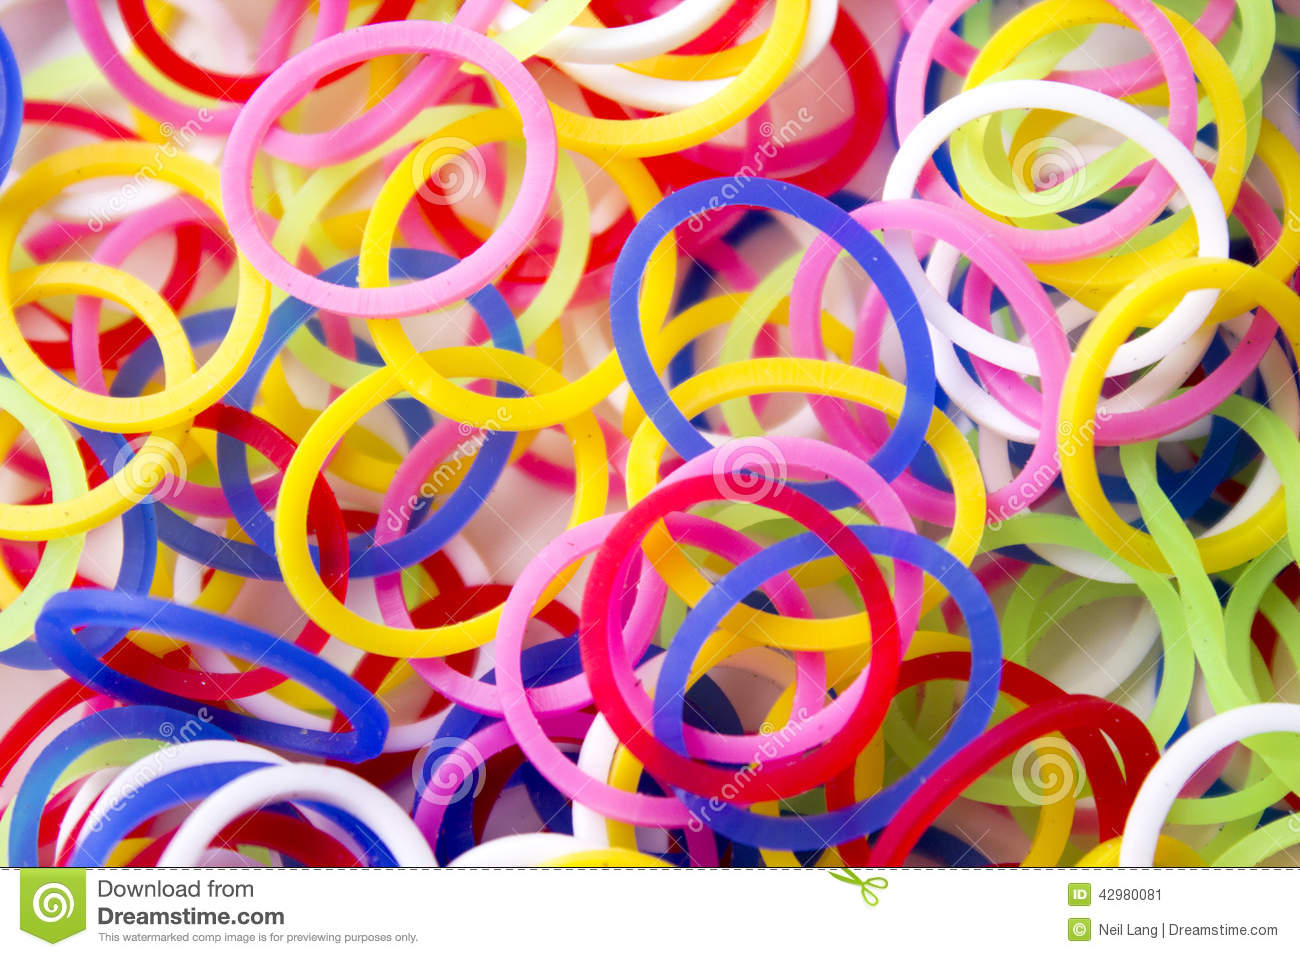 how to make bracelets with rubber bands